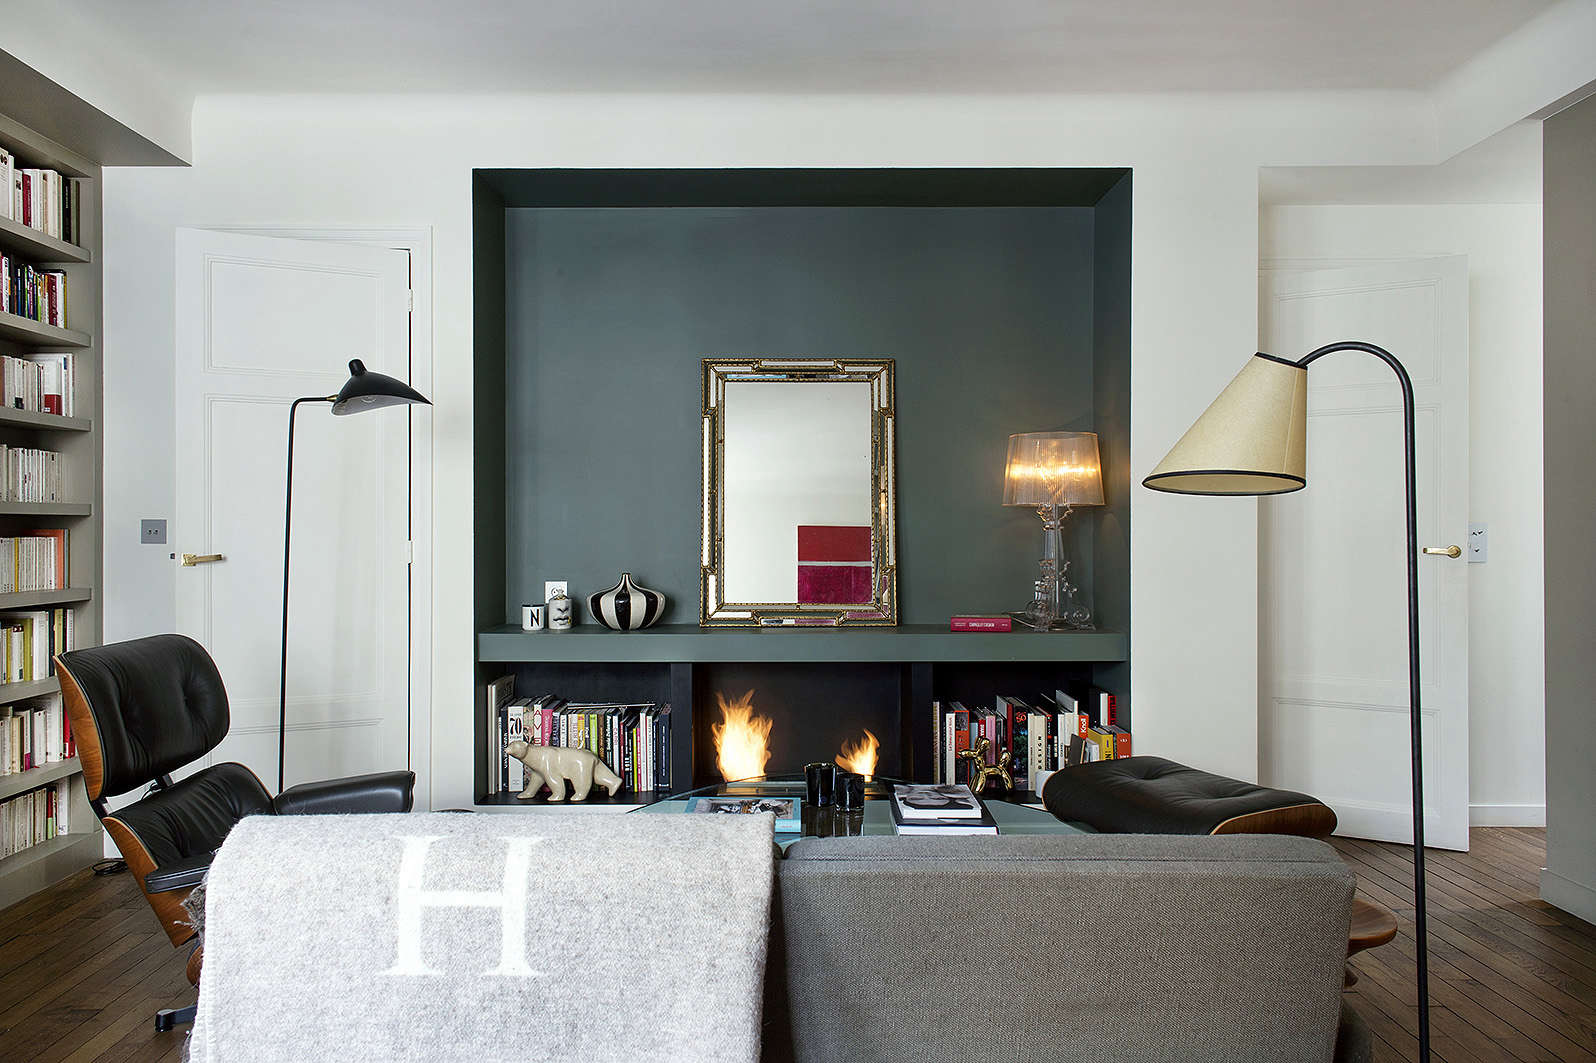 9 small space ideas to steal from a tiny paris apartment - Living room decor for small spaces ...